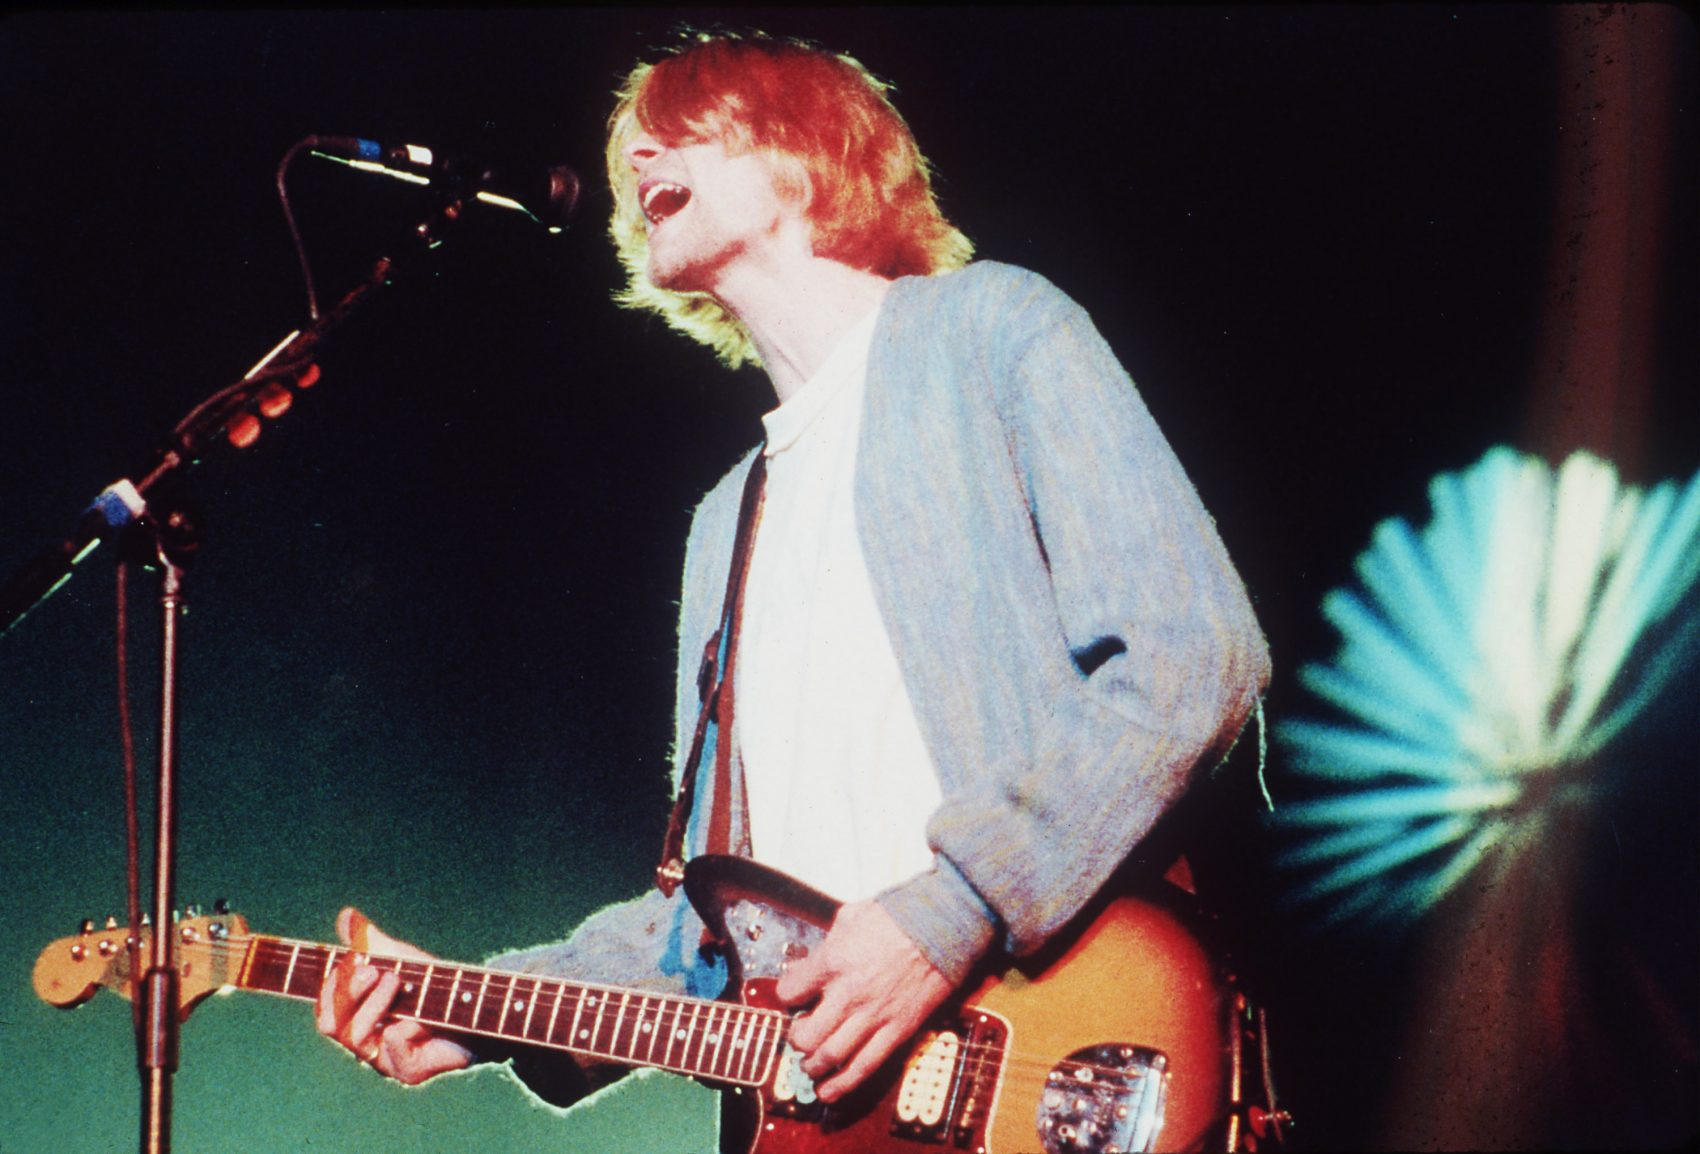 What Would Have Been His 50th Birthday How Kurt Cobain s Music Still Resonates